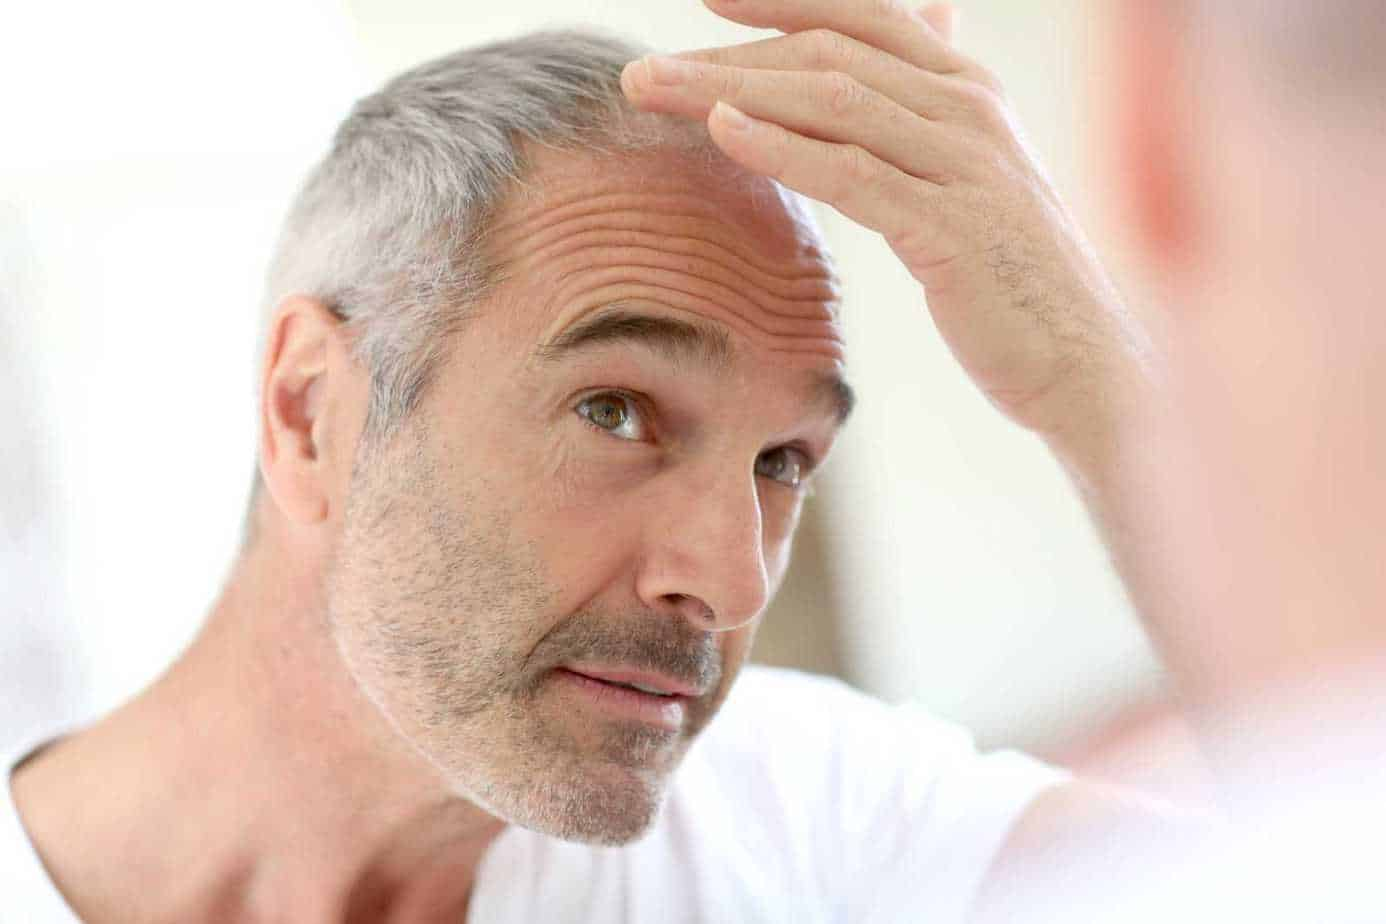 Hair Loss After Hair Transplants – Do You Need Another Treatment?